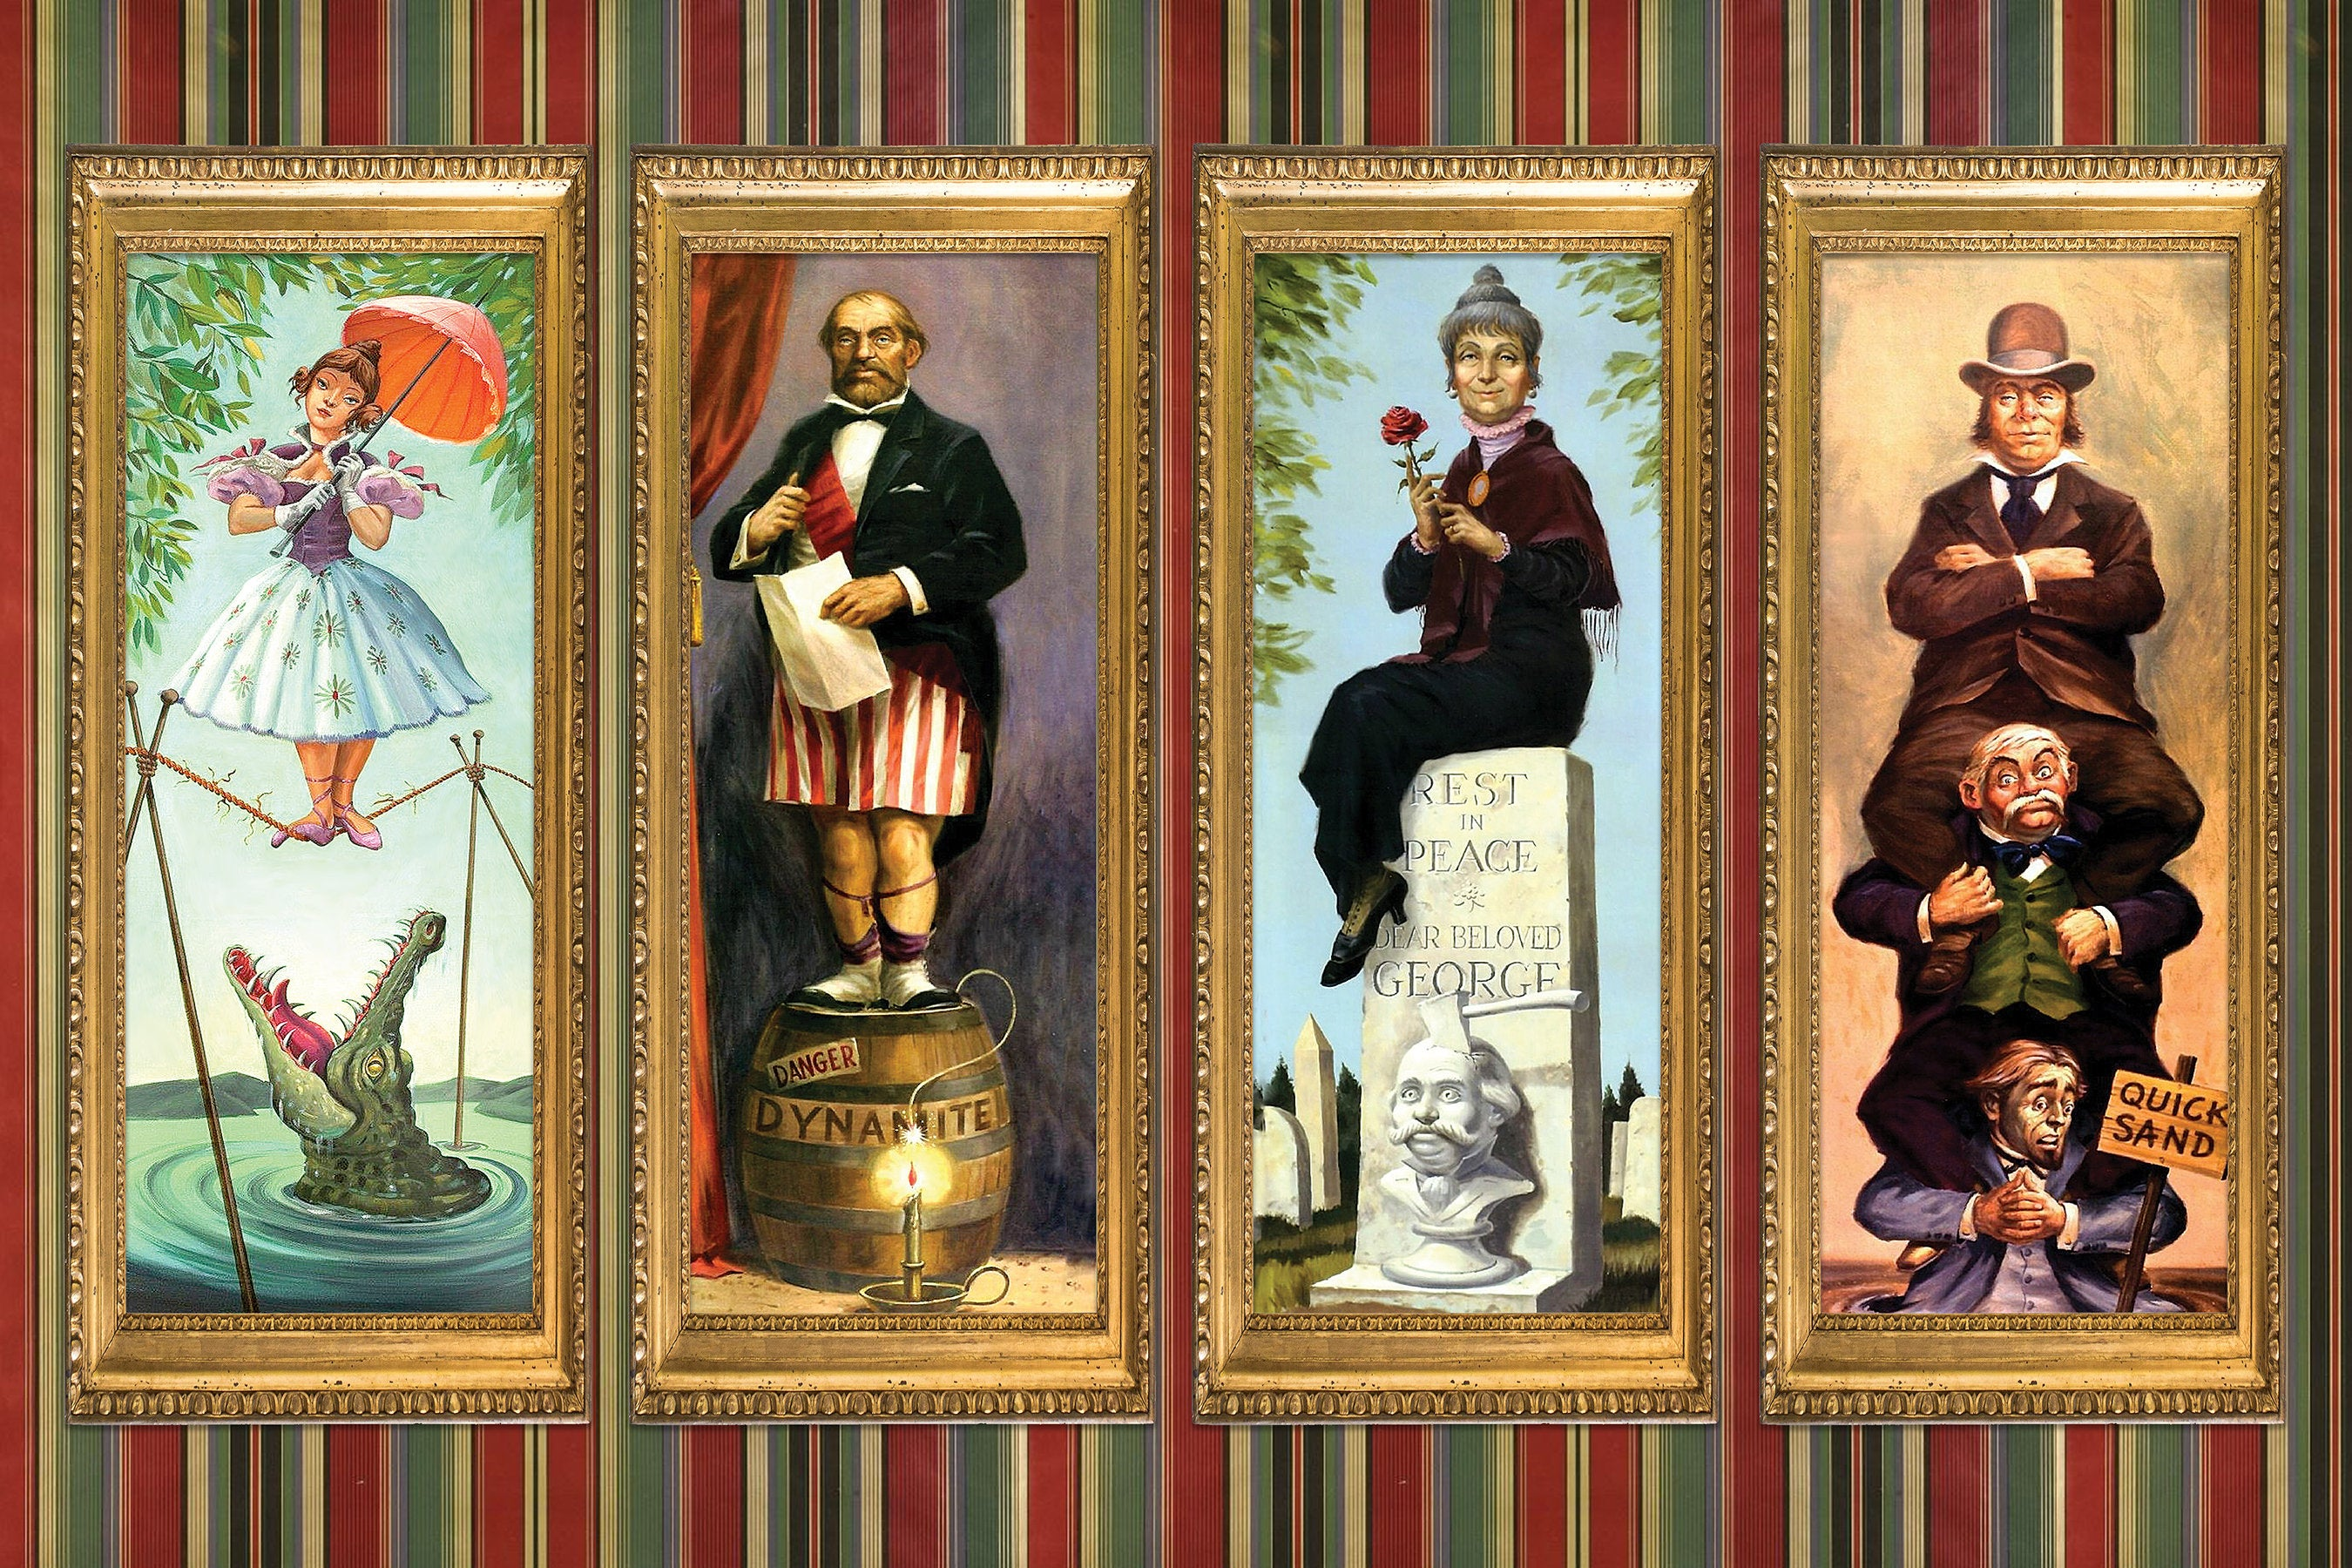 Portraits de la Stretch Room de Haunted Mansion / Source : hauntedmansion.fandom.com